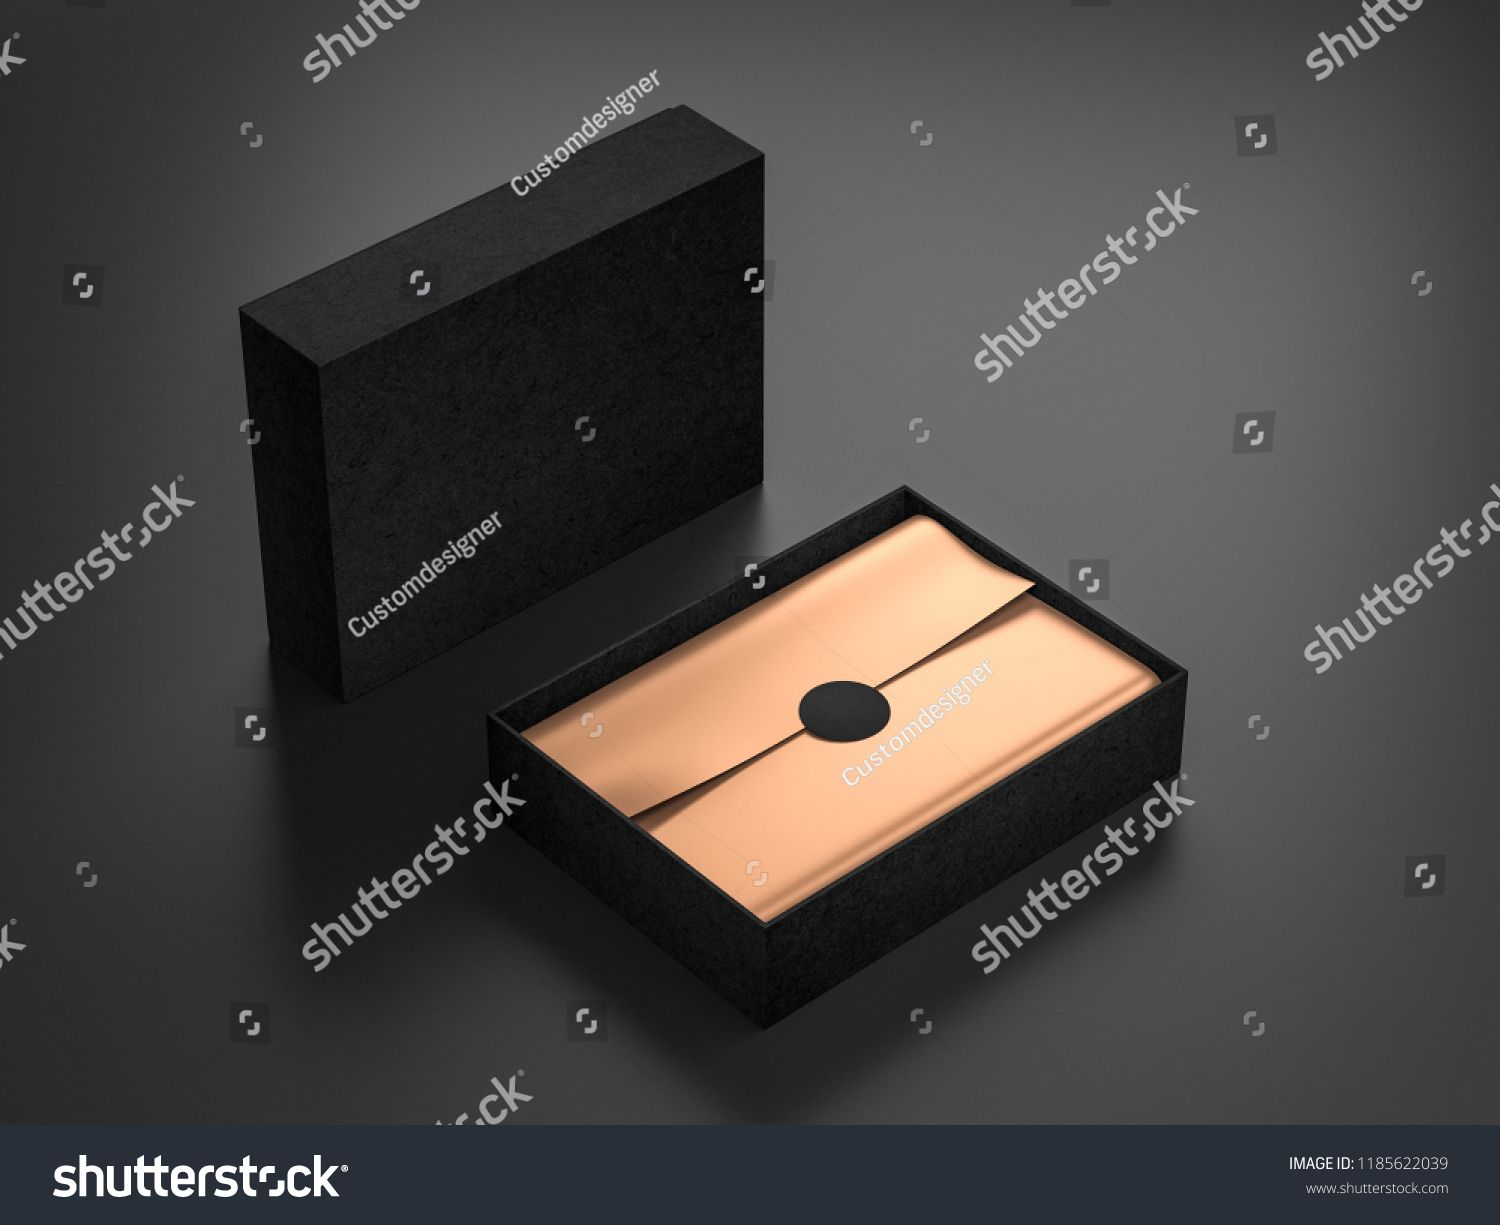 Download Opened Black Box Mockup With Golden Wrapping Paper And Label 3d Rendering Box Mockup Opened Black Box Mockup Black Box Box